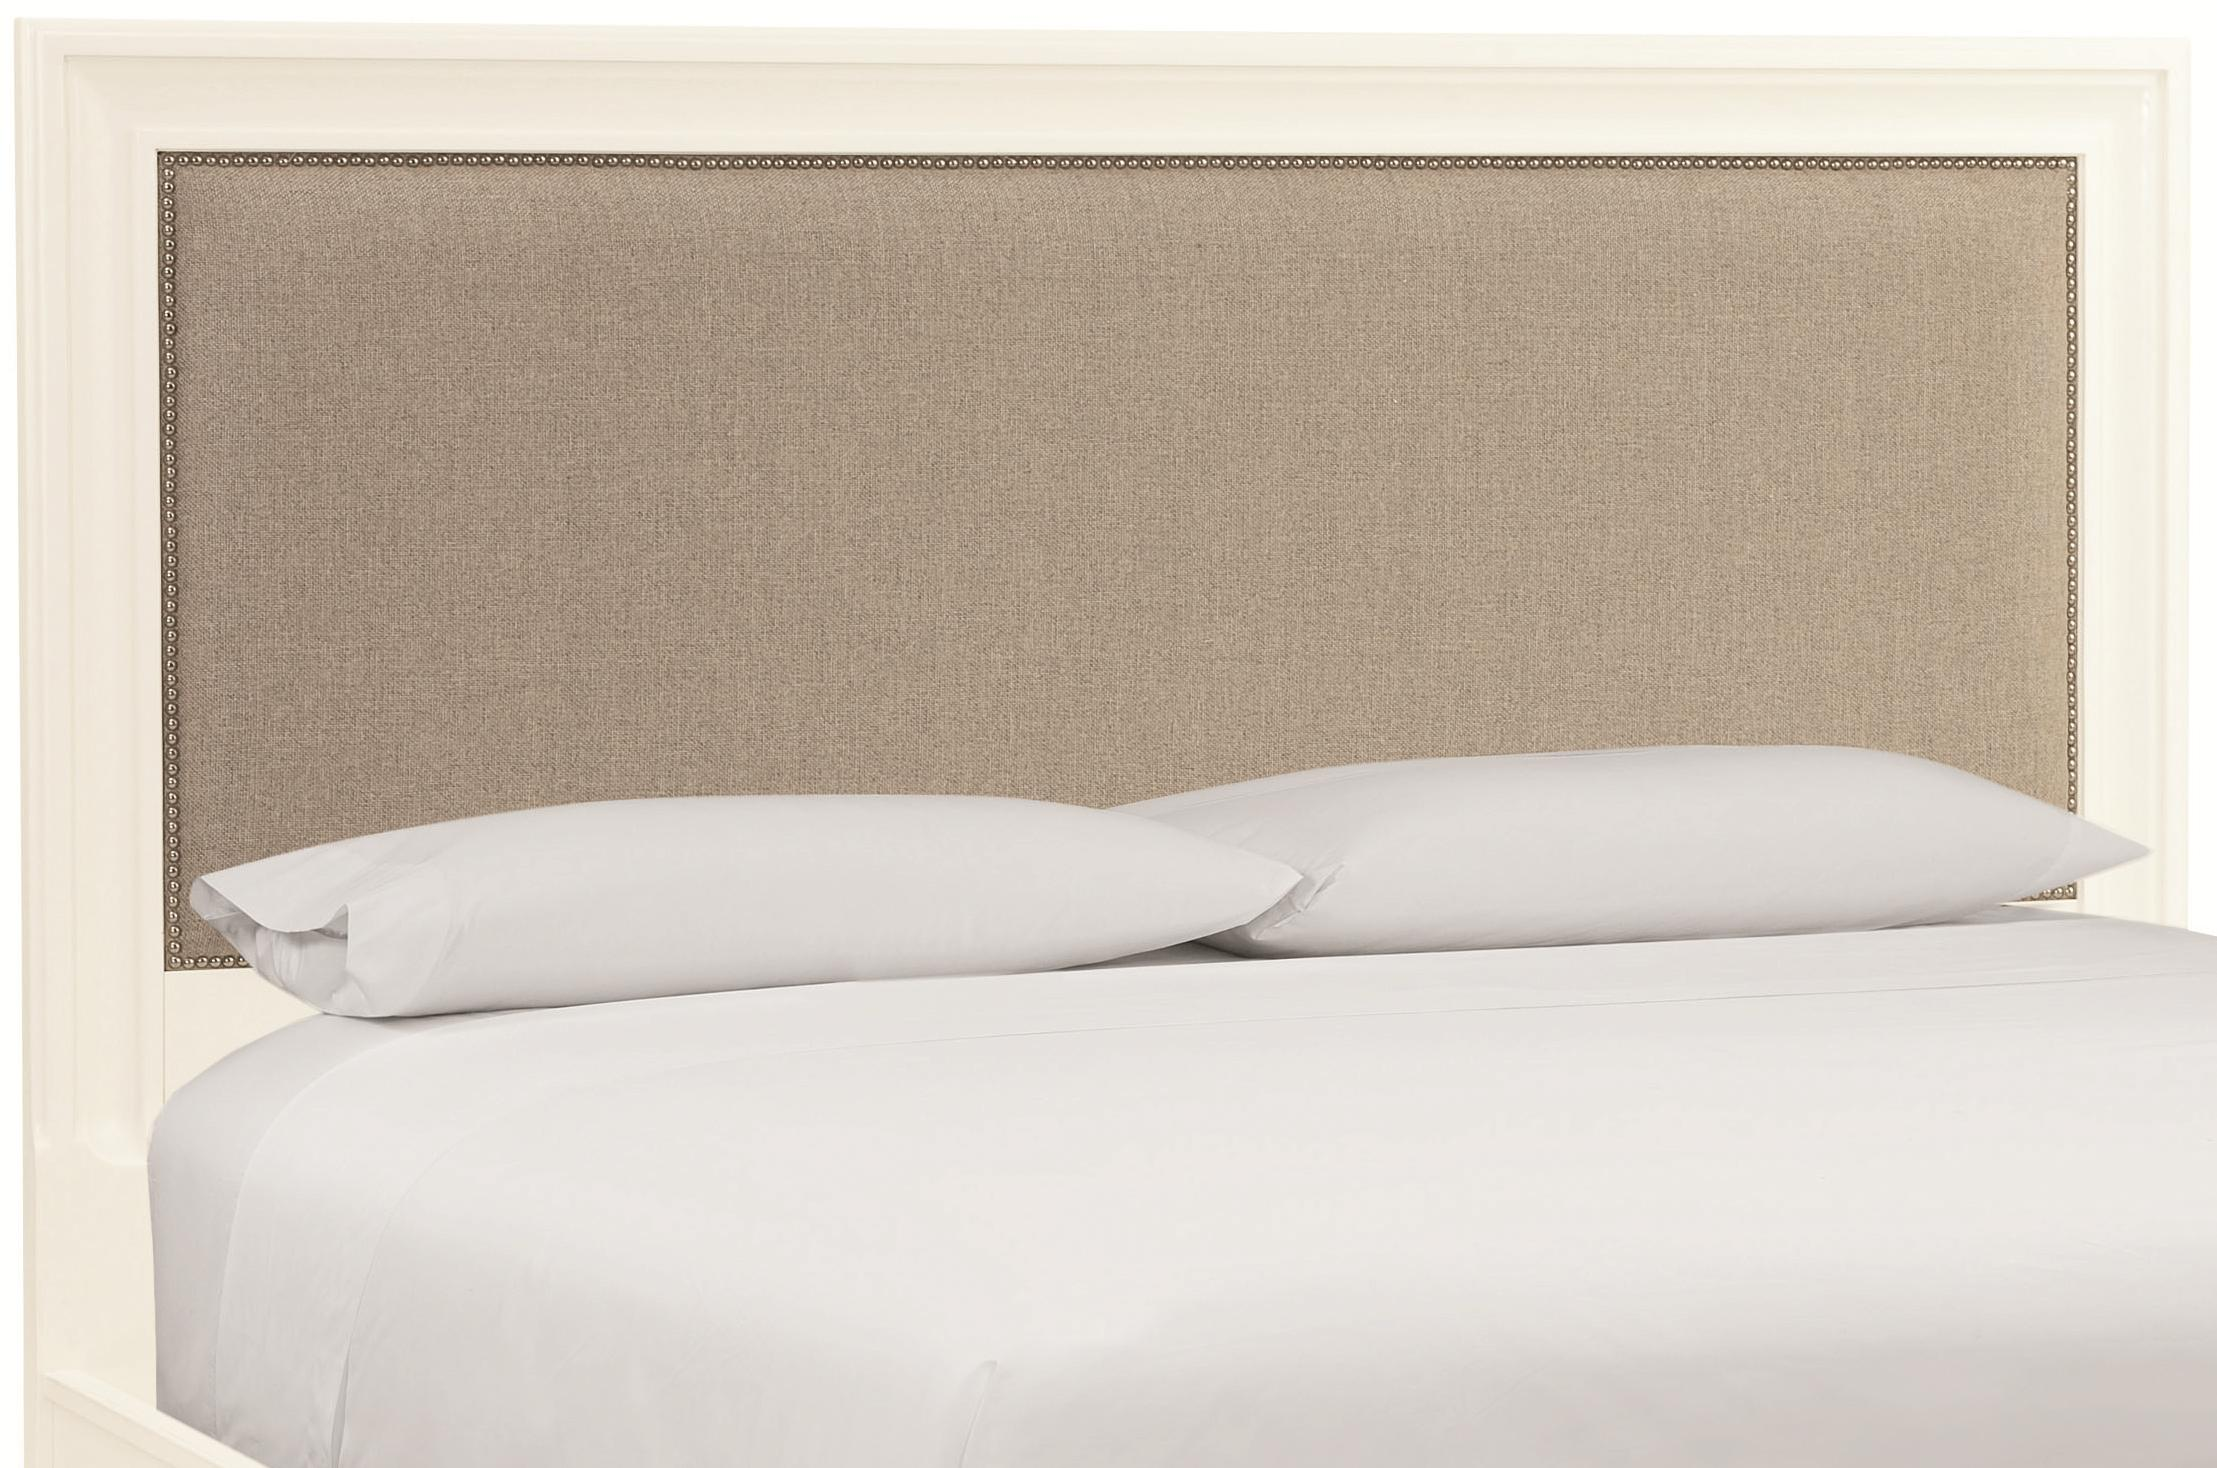 Thomasville® Manuscript King/California King Upholstered Headboard - Item Number: 82915-436